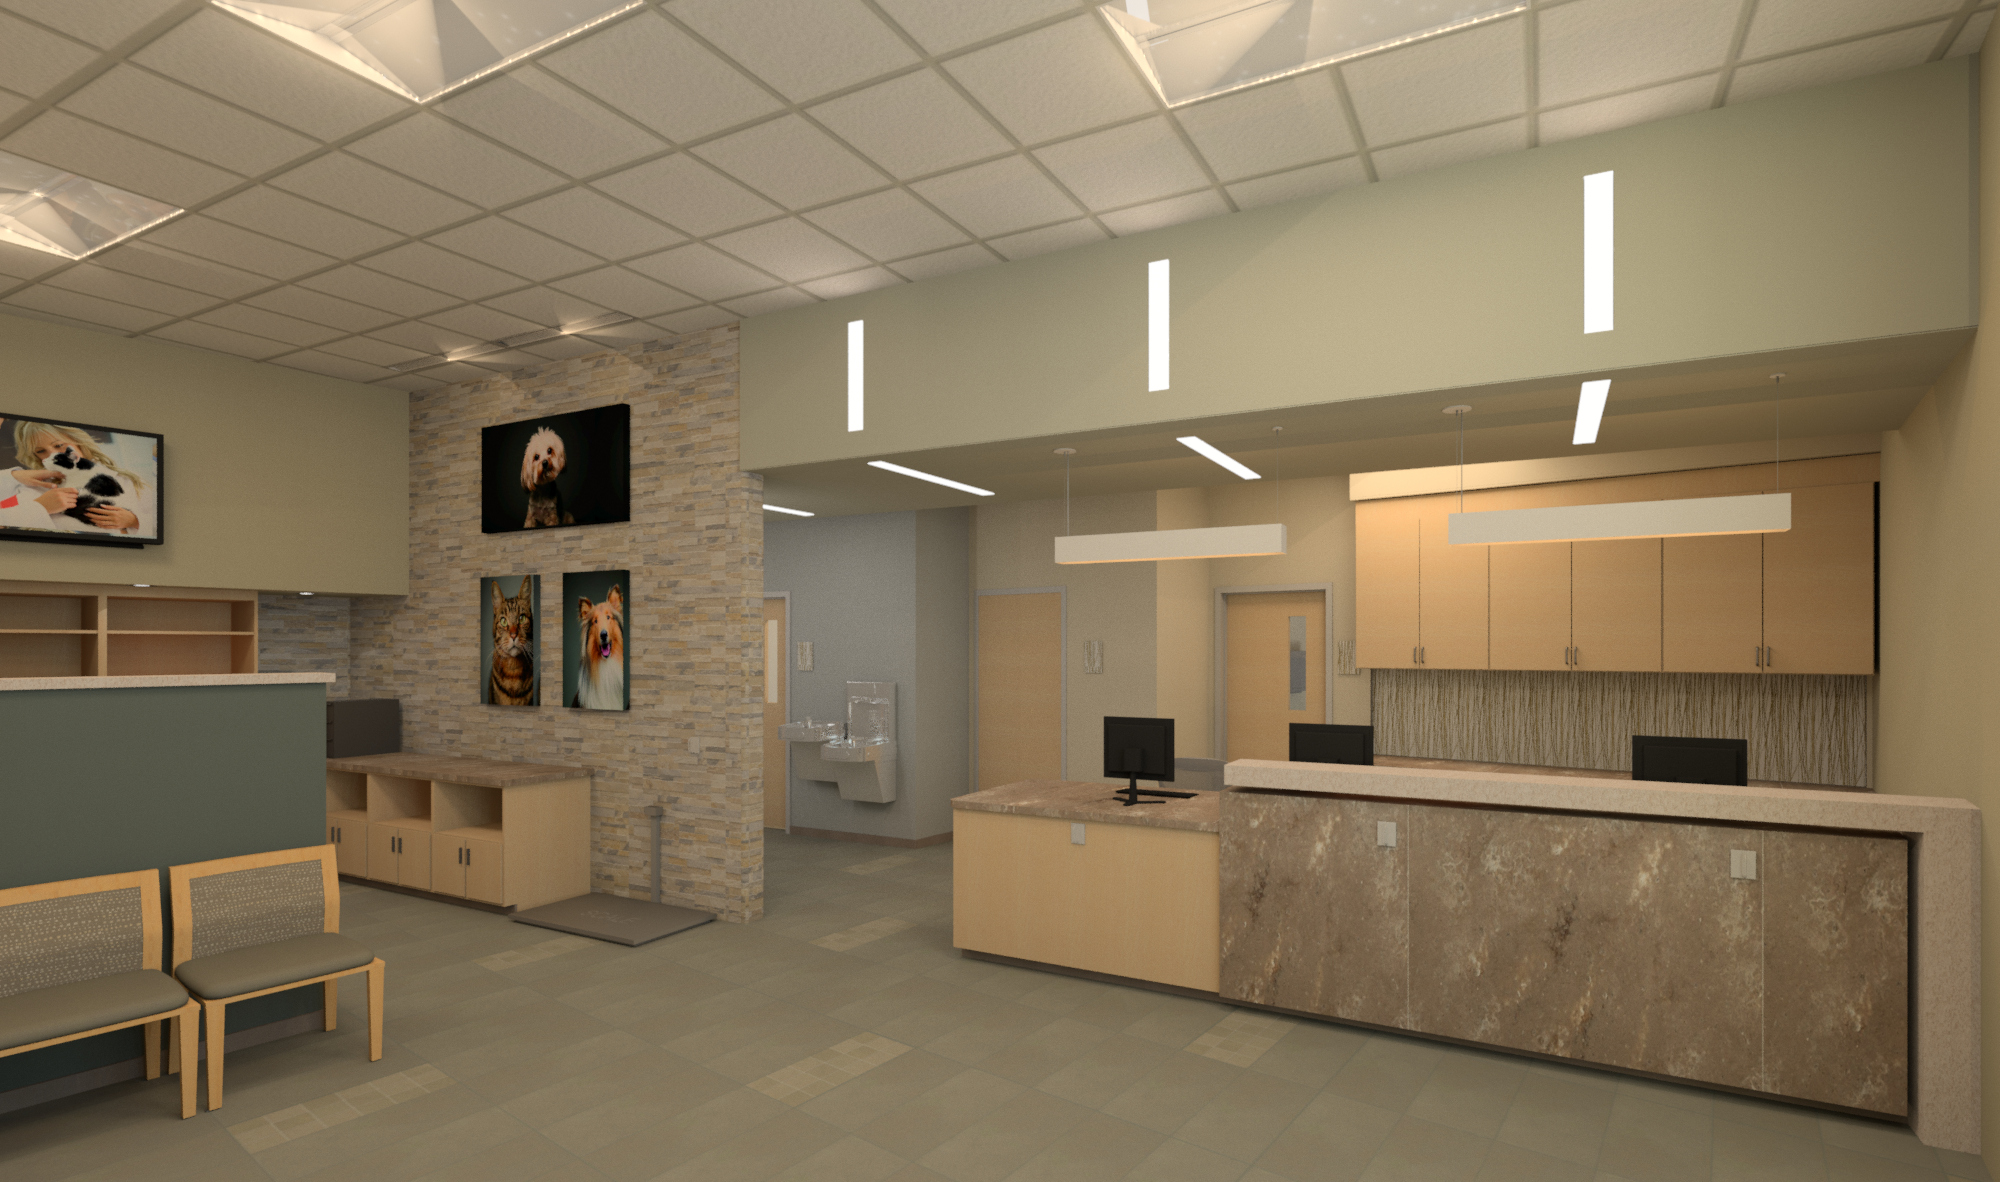 WESTSIDE RECEPTION FINAL RENDER- RECEPTION DESK - REVISED.jpg